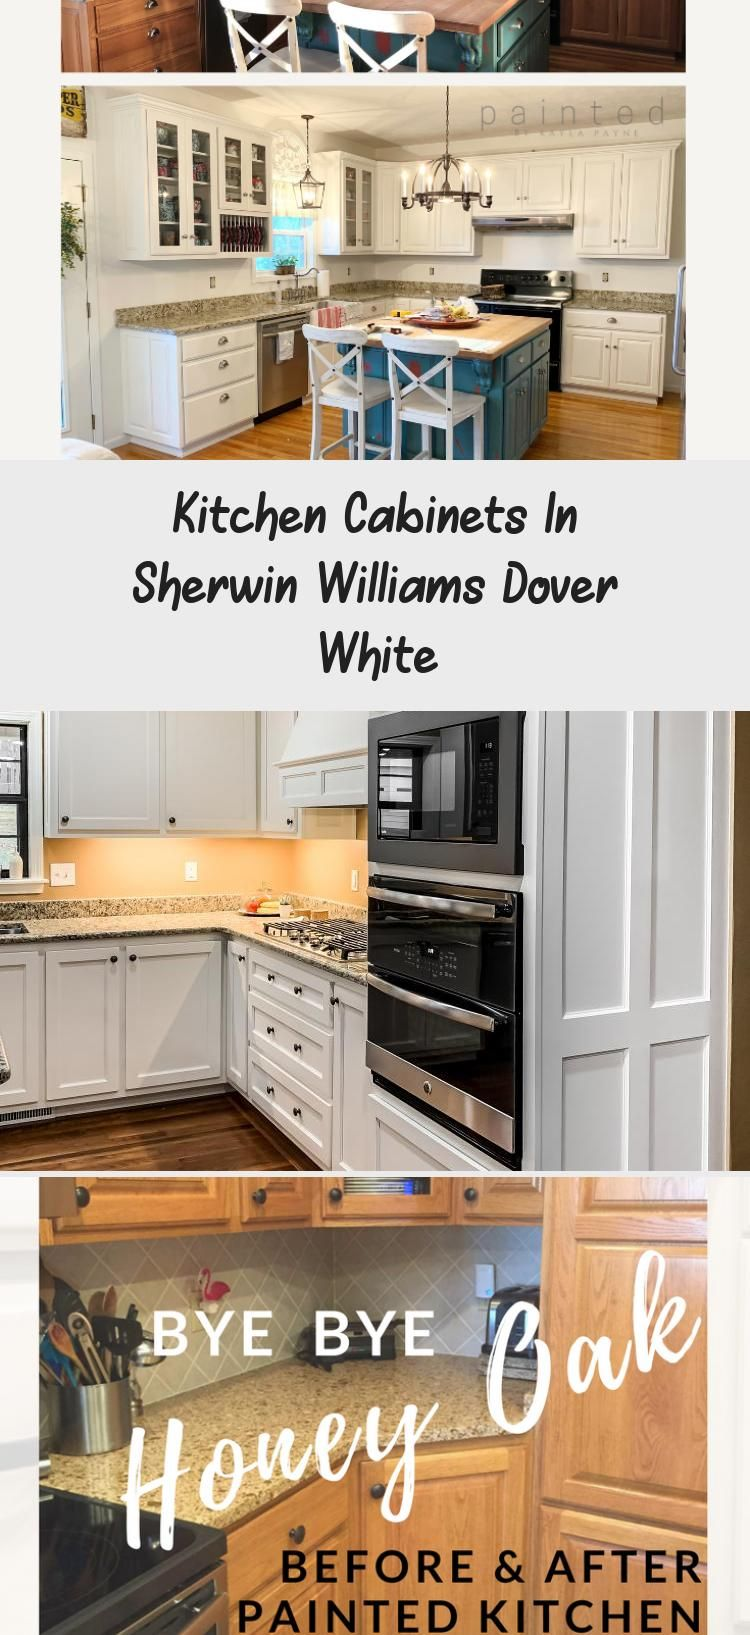 Kitchen Cabinets In Sherwin Williams Dover White Sherwin Williams Dover White White Kitchen Decor Kitchen Colors